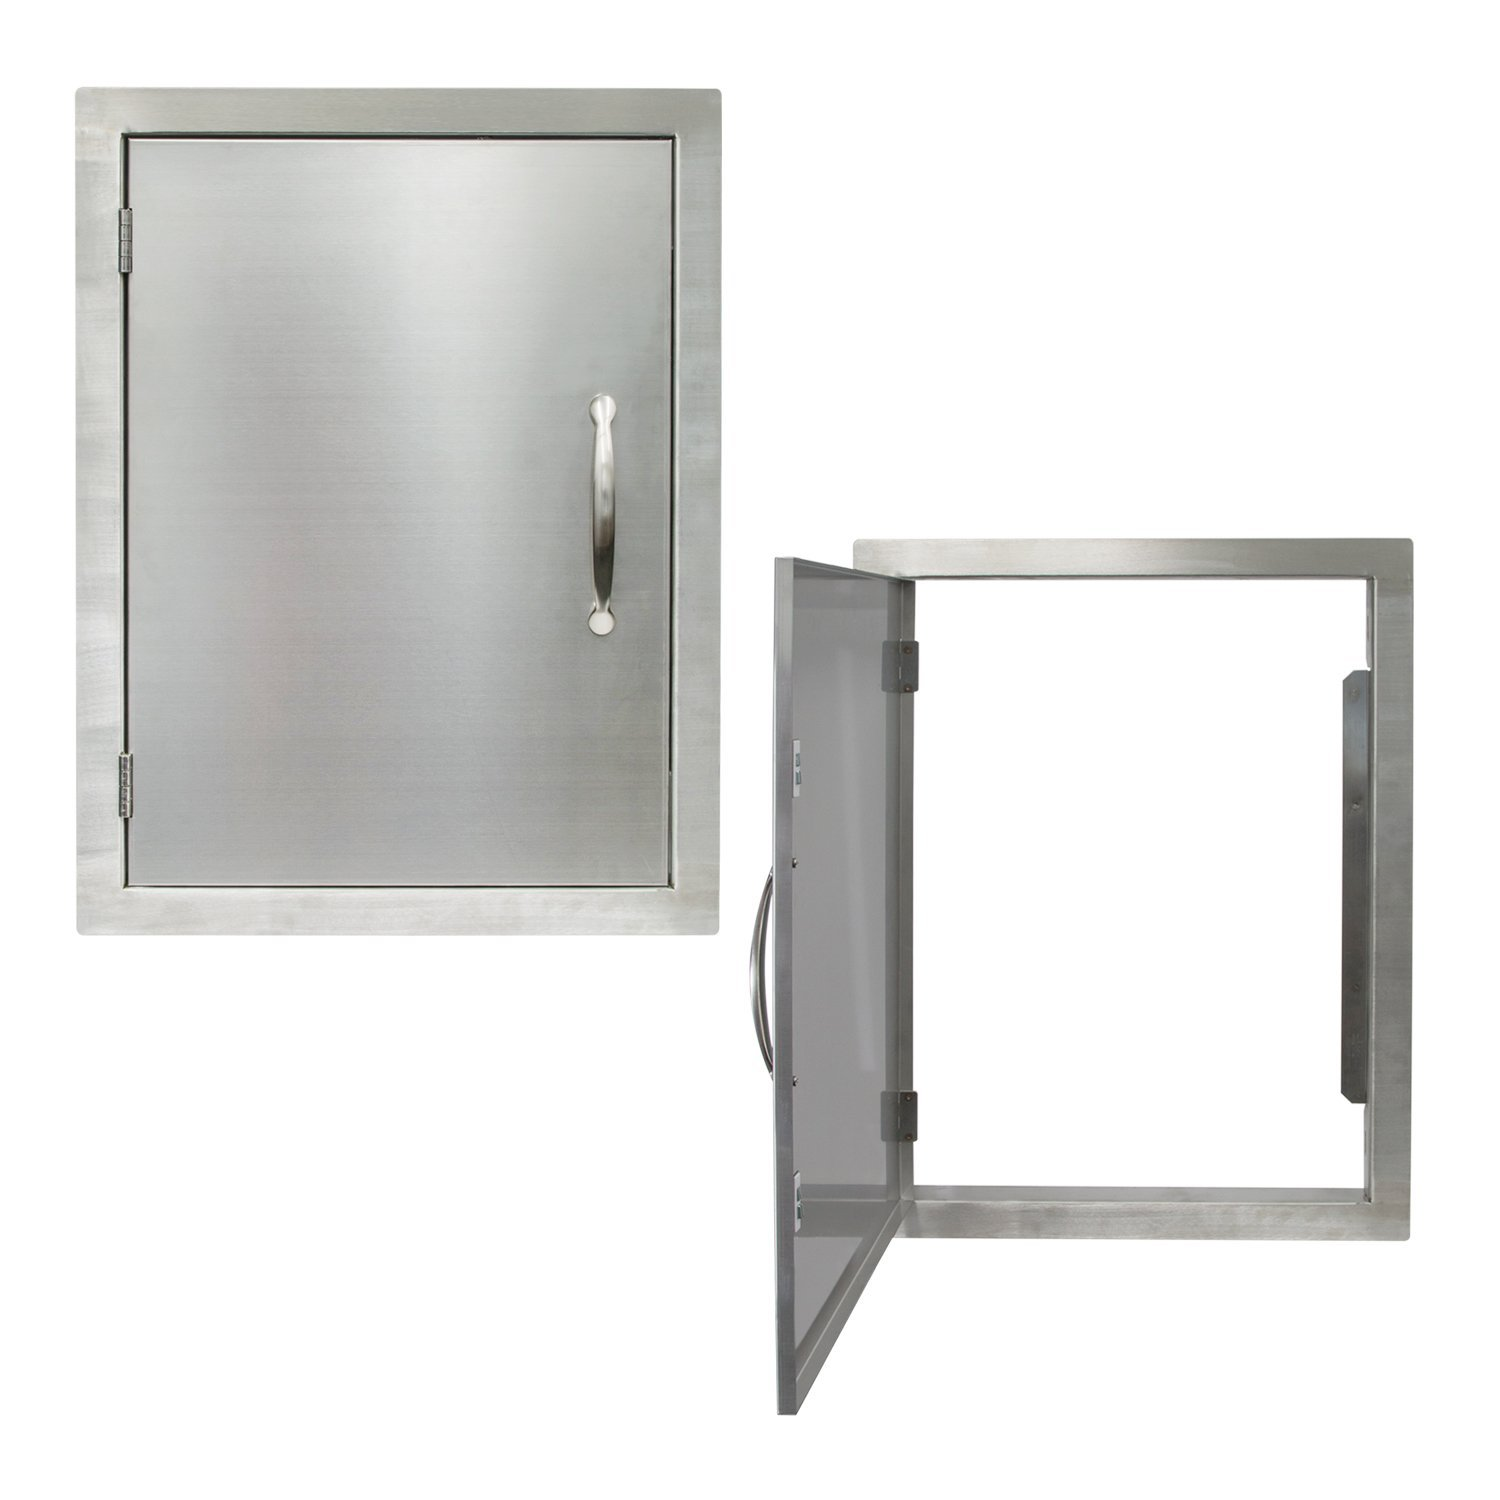 Houseables BBQ Access Door, Stainless Steel, Vertical, Single, 17 x 24 Inch, Commercial Grade, 0.5'' Thick Frame, Patio Island Cabinet, Outdoor Barbecue Grill Kitchen, Flush Mount, Chrome Handle